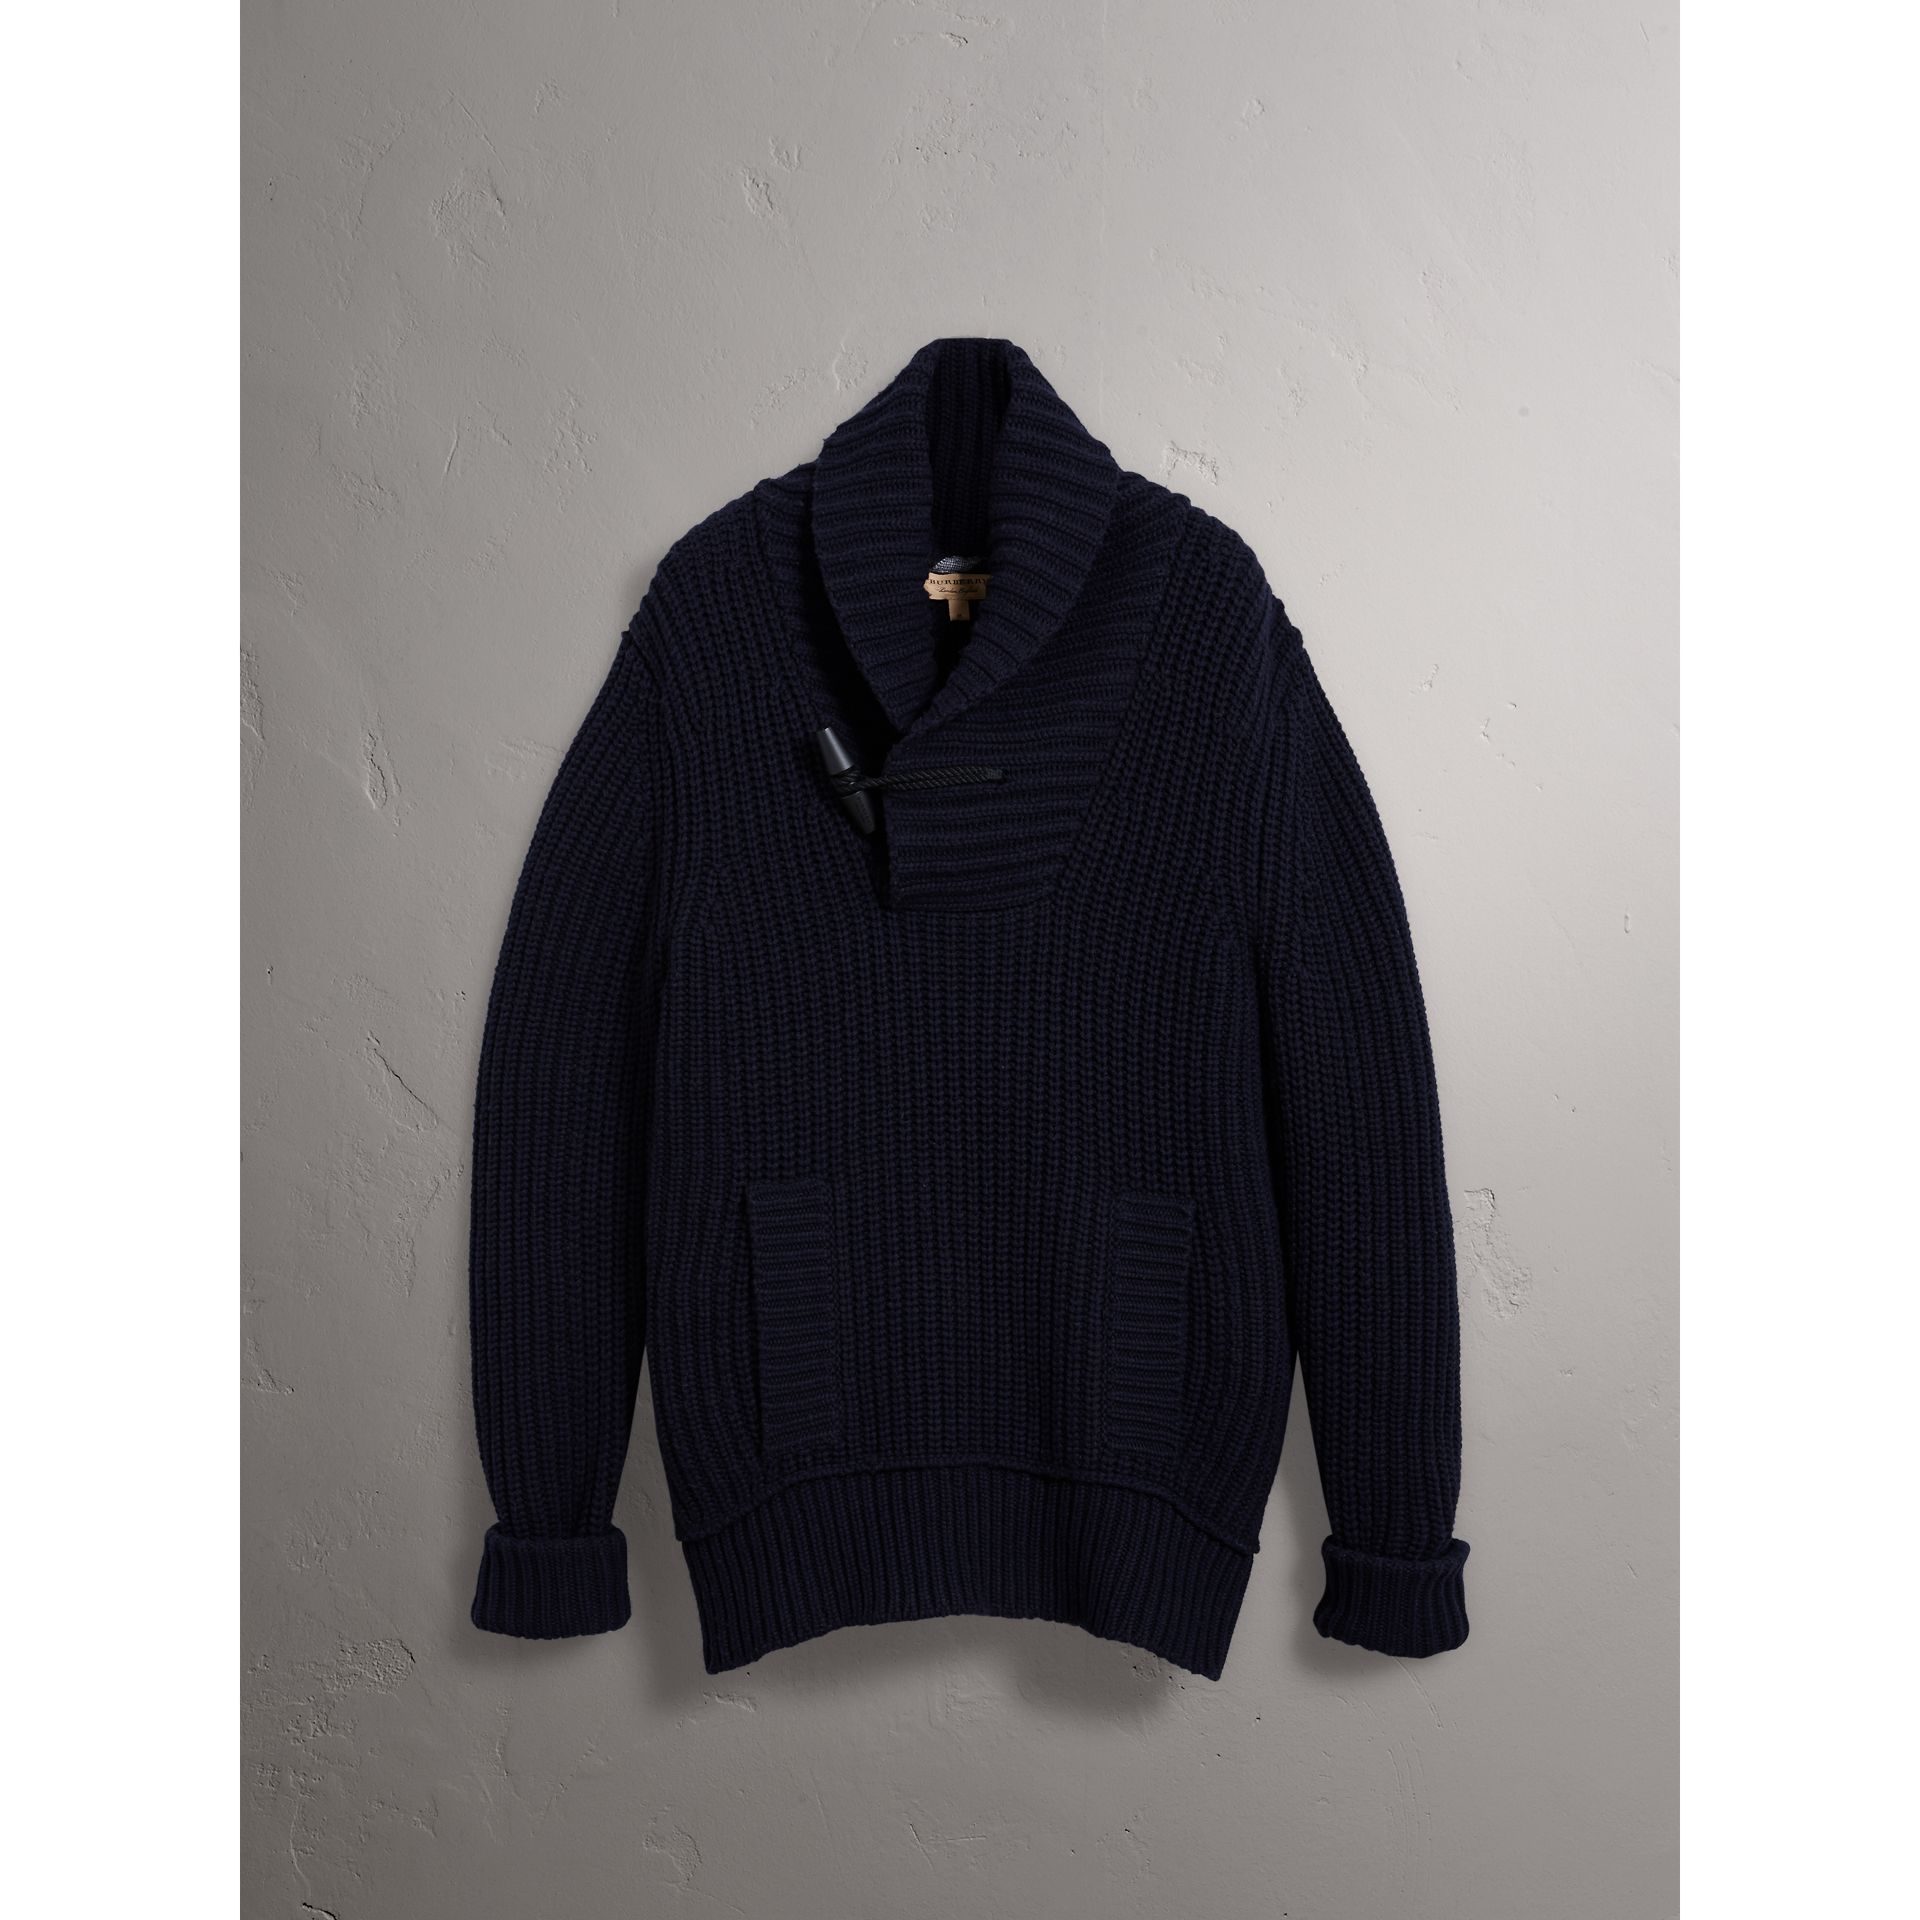 Burberry Navy Shawl Collar Wool Cashmere Sweater